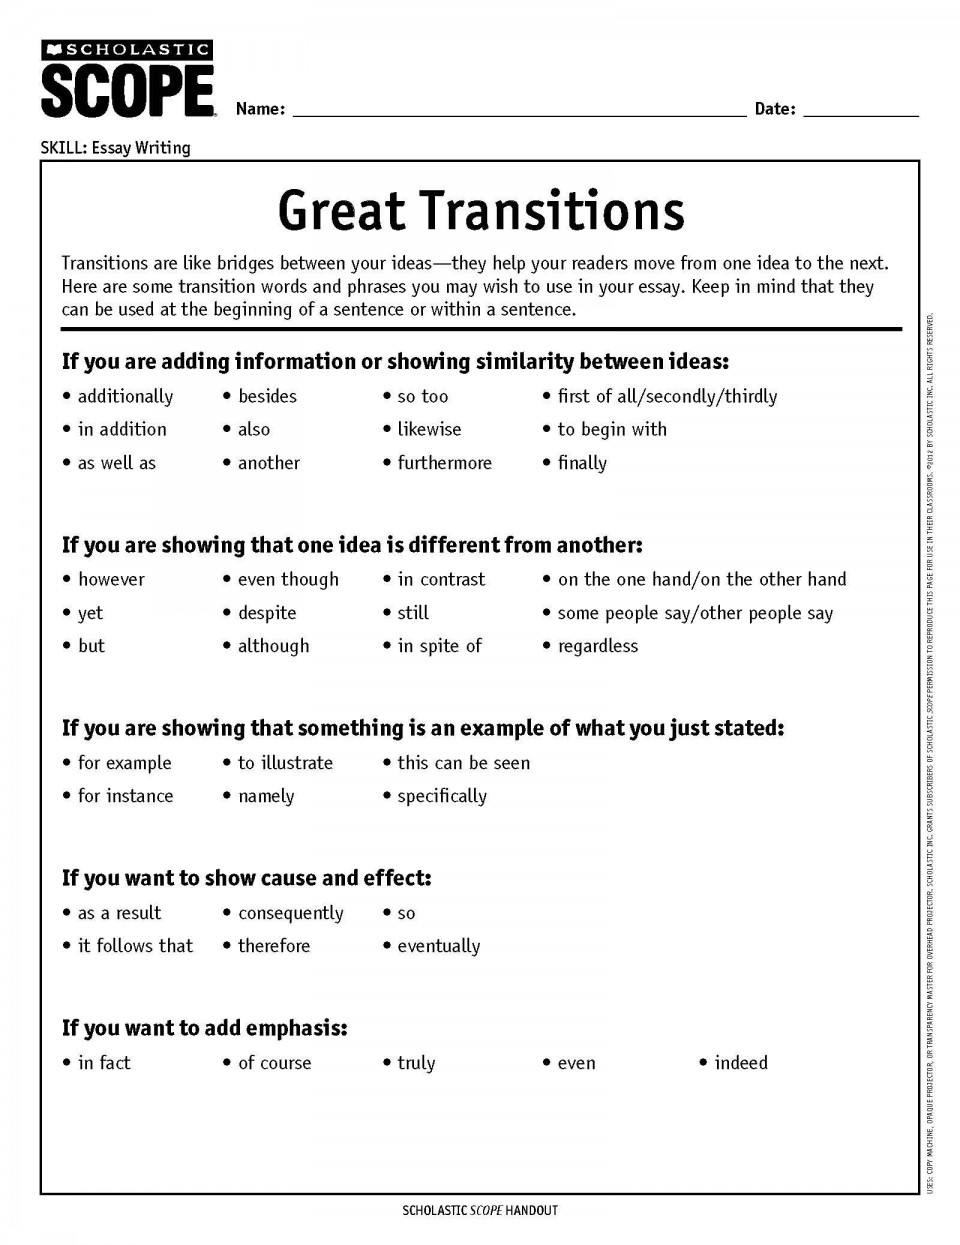 019 Essay Example Transitions How To Choose The Perfect Transition Word Or Phrase Writing Words For An List Of Transitional Essays Pdf Archaicawful Contrast Sentence Examples Conclusion In Spanish 960